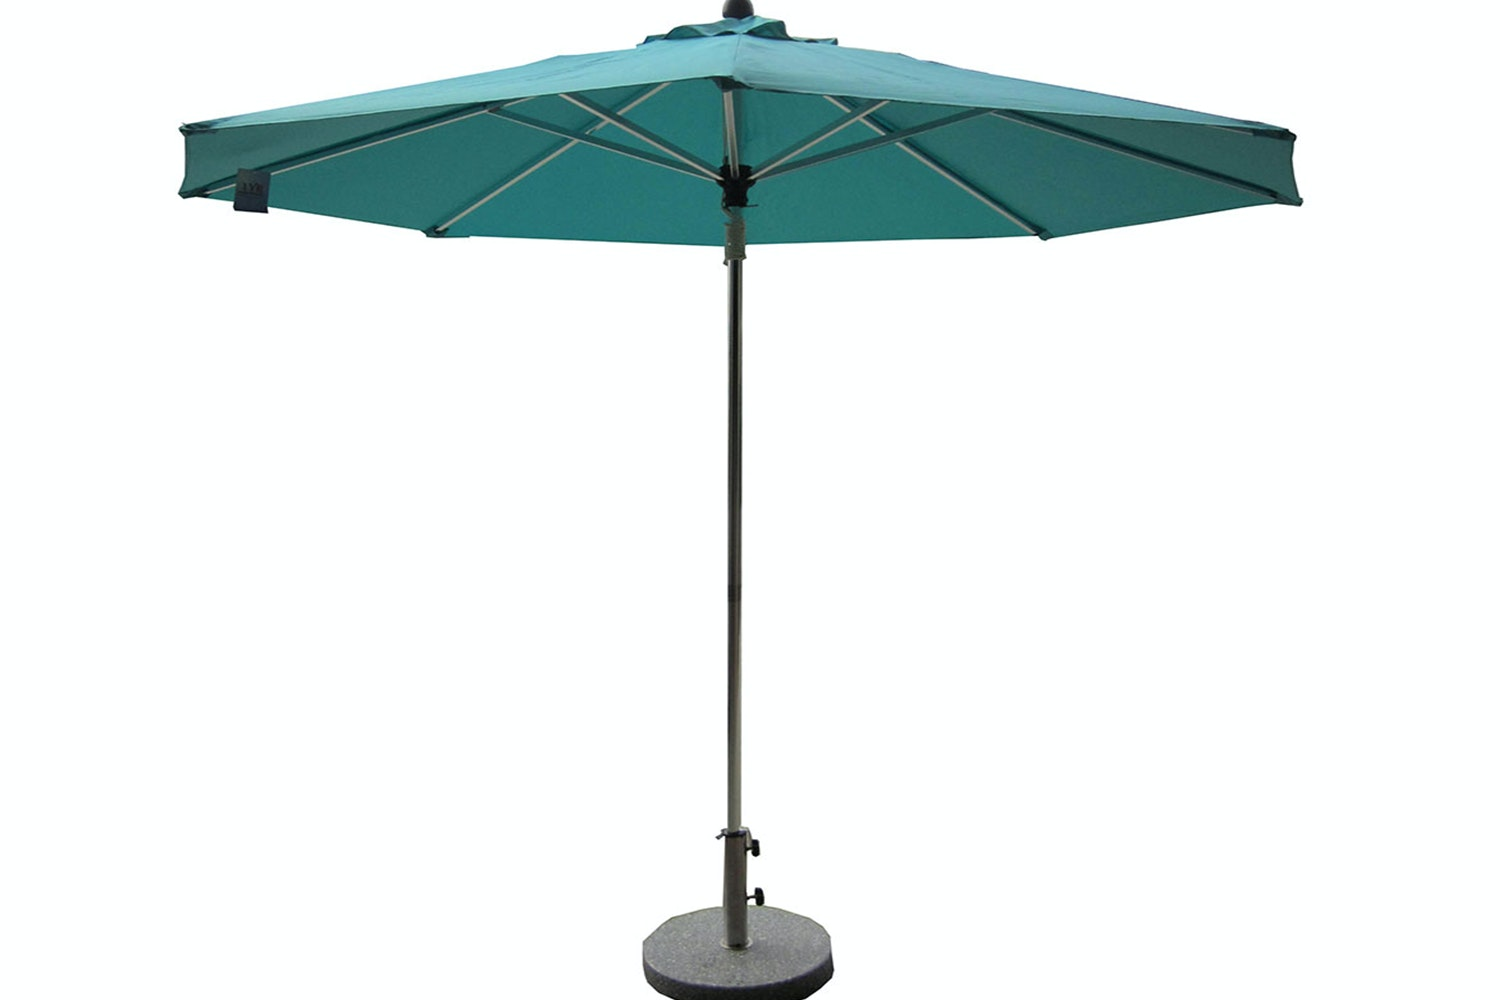 Triton 3.5m Teal Outdoor Umbrella with 25kg Granite Base by Peros